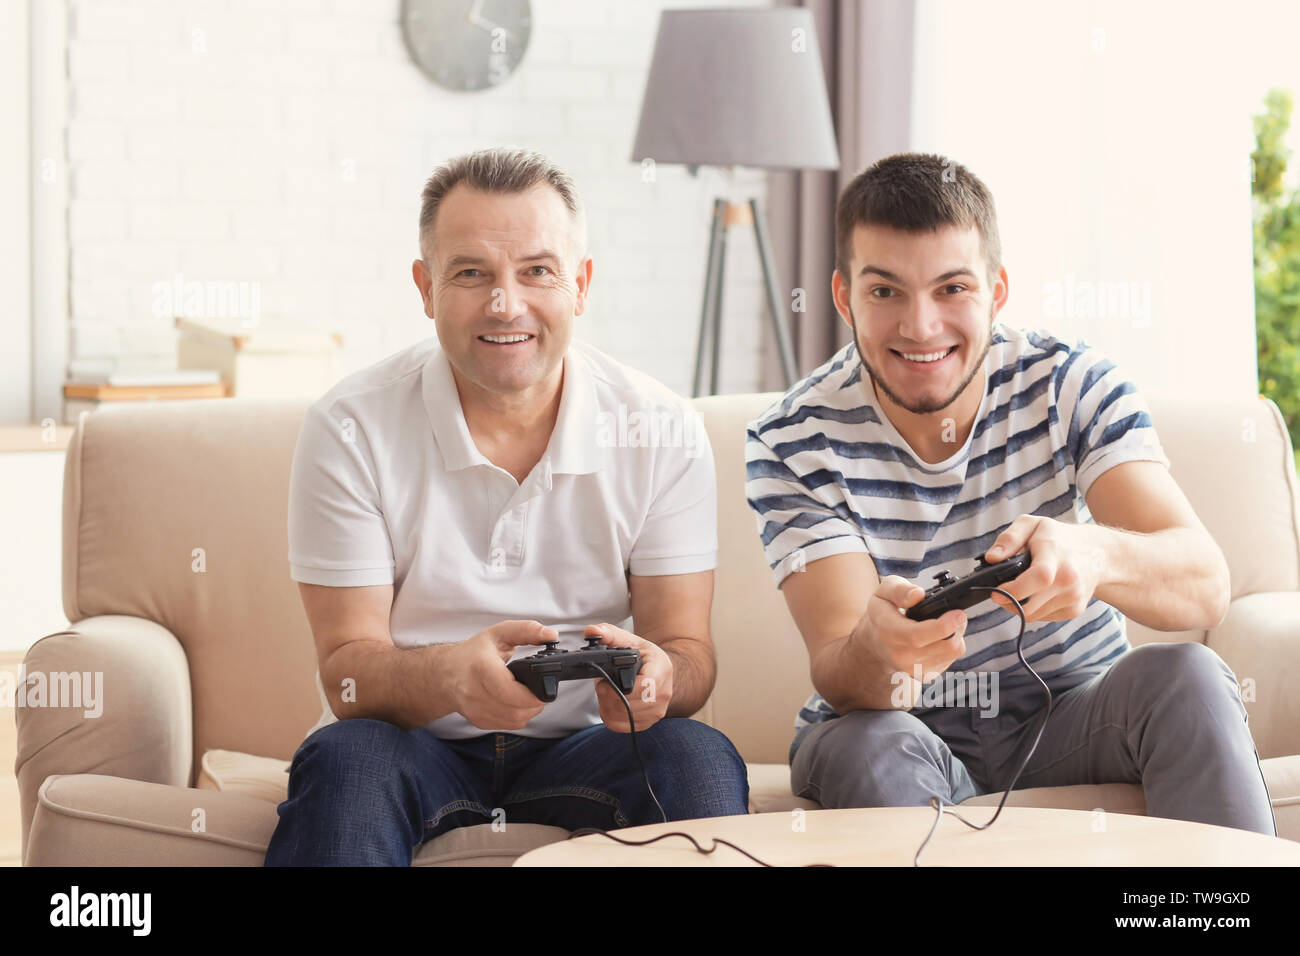 Mature man playing video game with his son at home - Stock Image